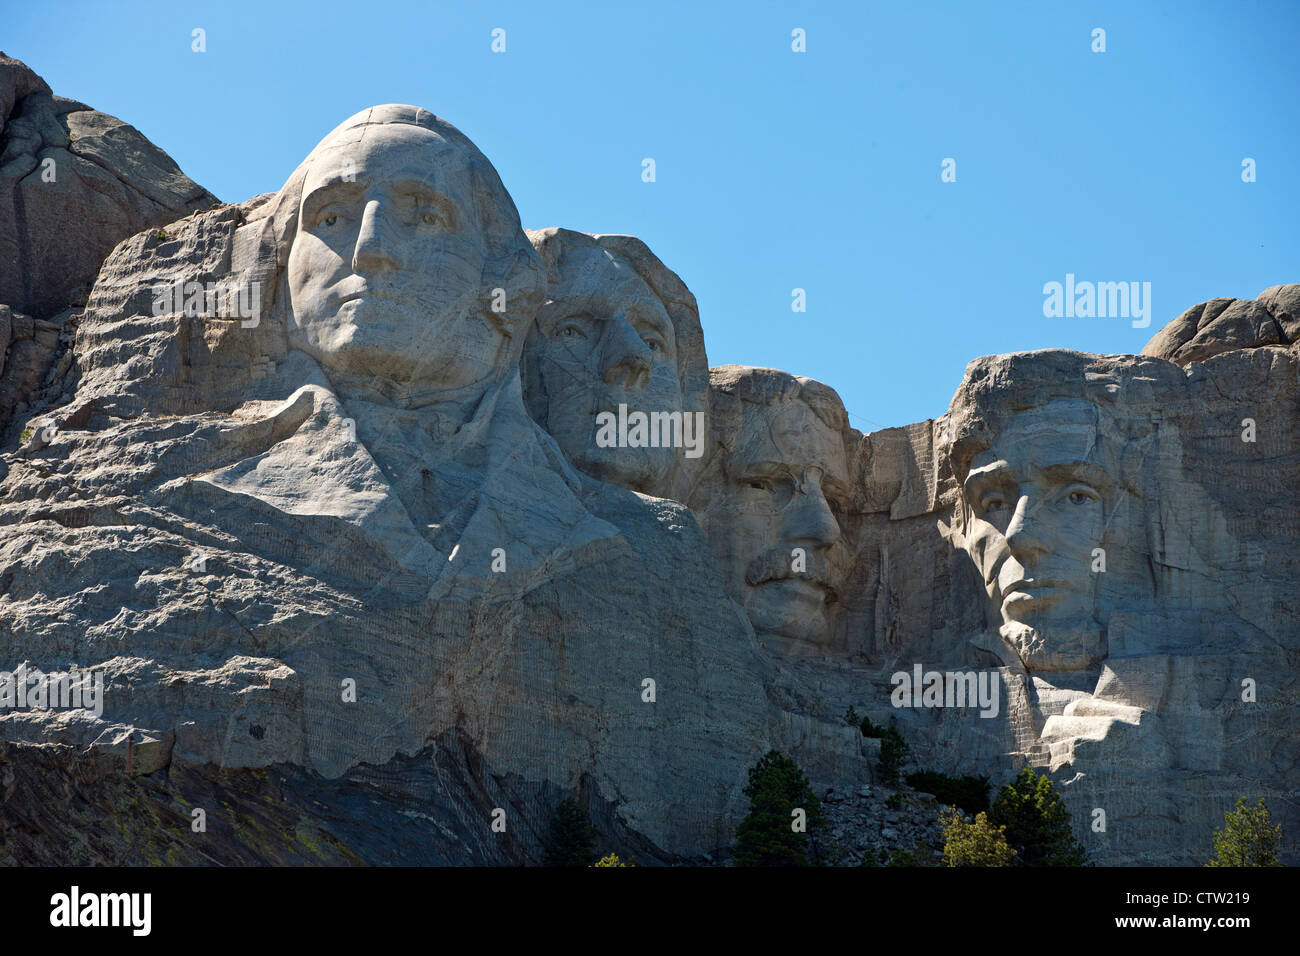 Detailed view Mt. Rushmore with sculptures of former presidents George Washington, Thomas Jefferson, Theodore Roosevelt, Stock Photo